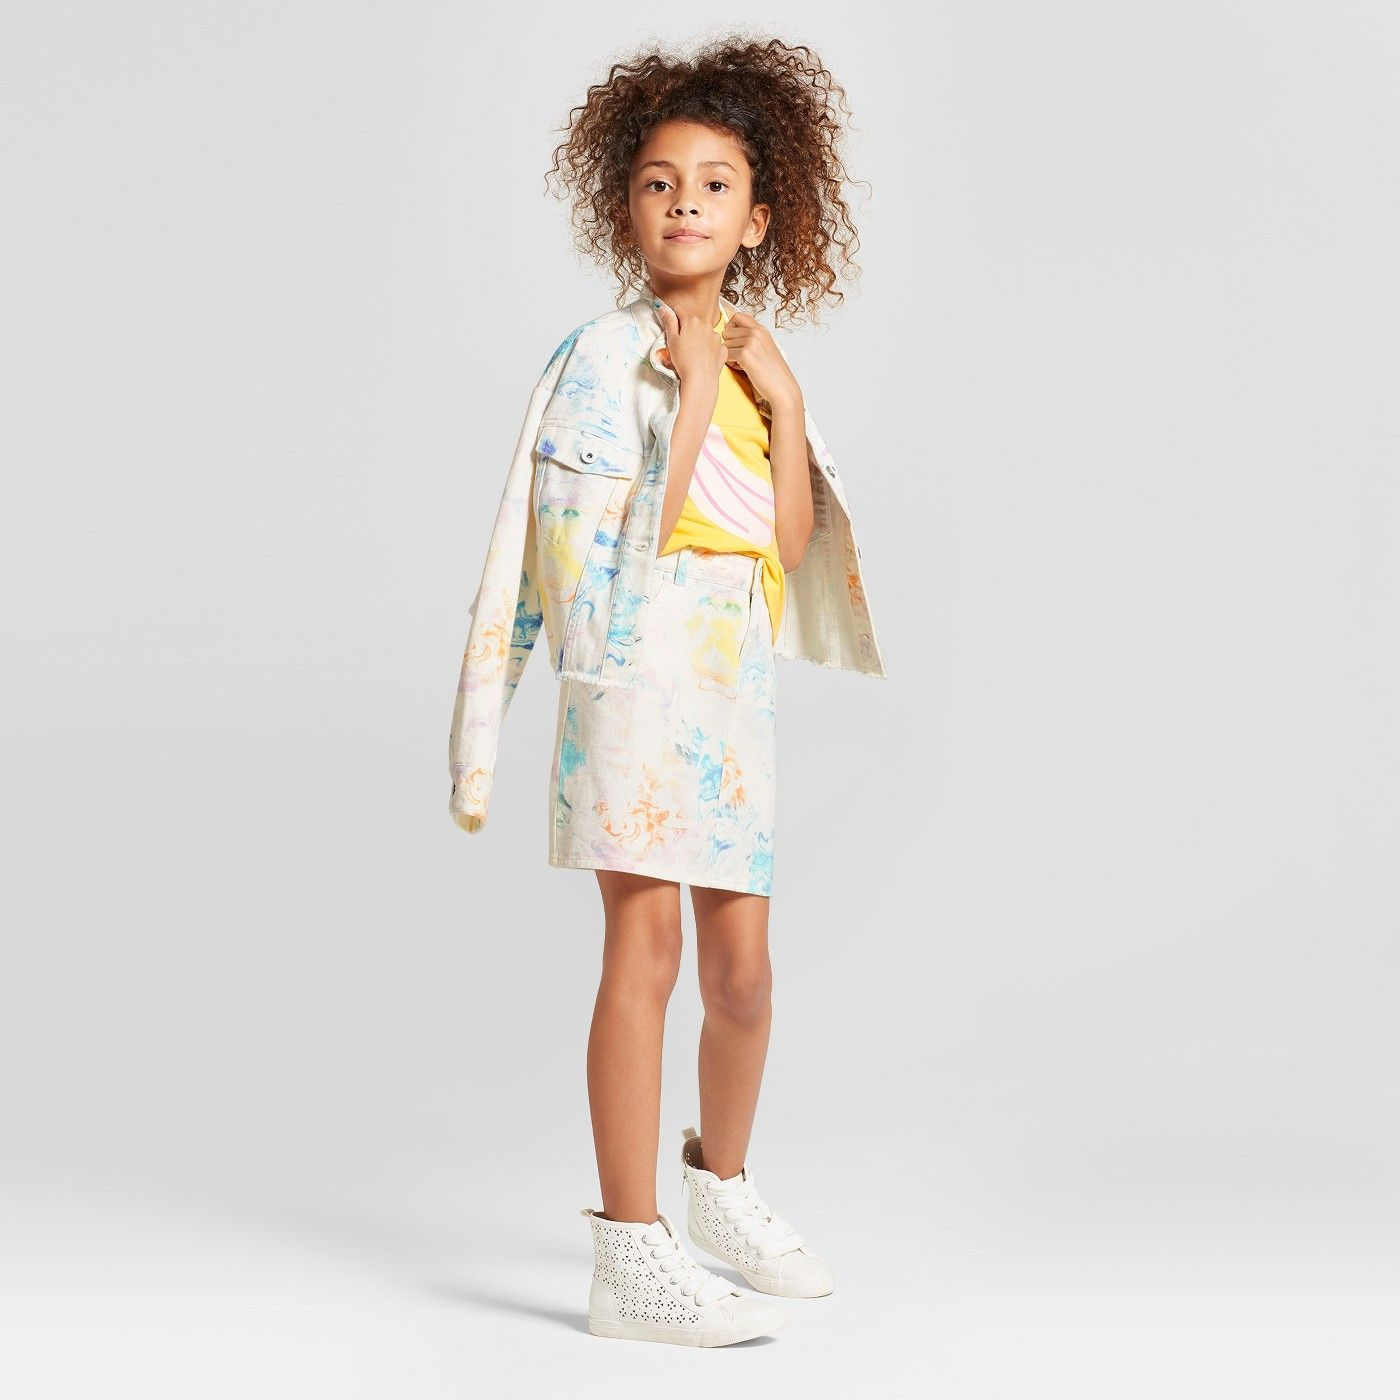 50 Affordable Back,to,School Outfits for Kids